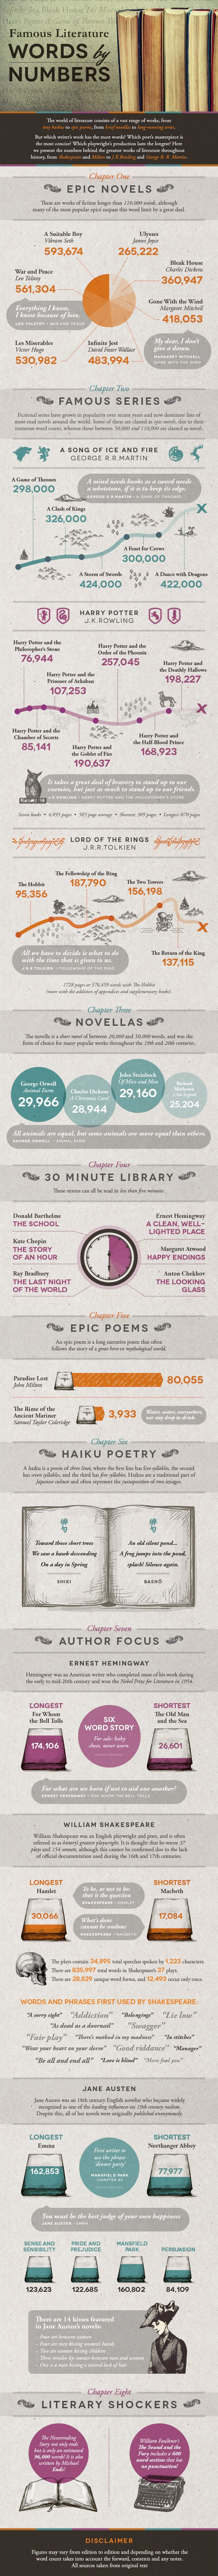 Famous Literature Words by Numbers #infographic